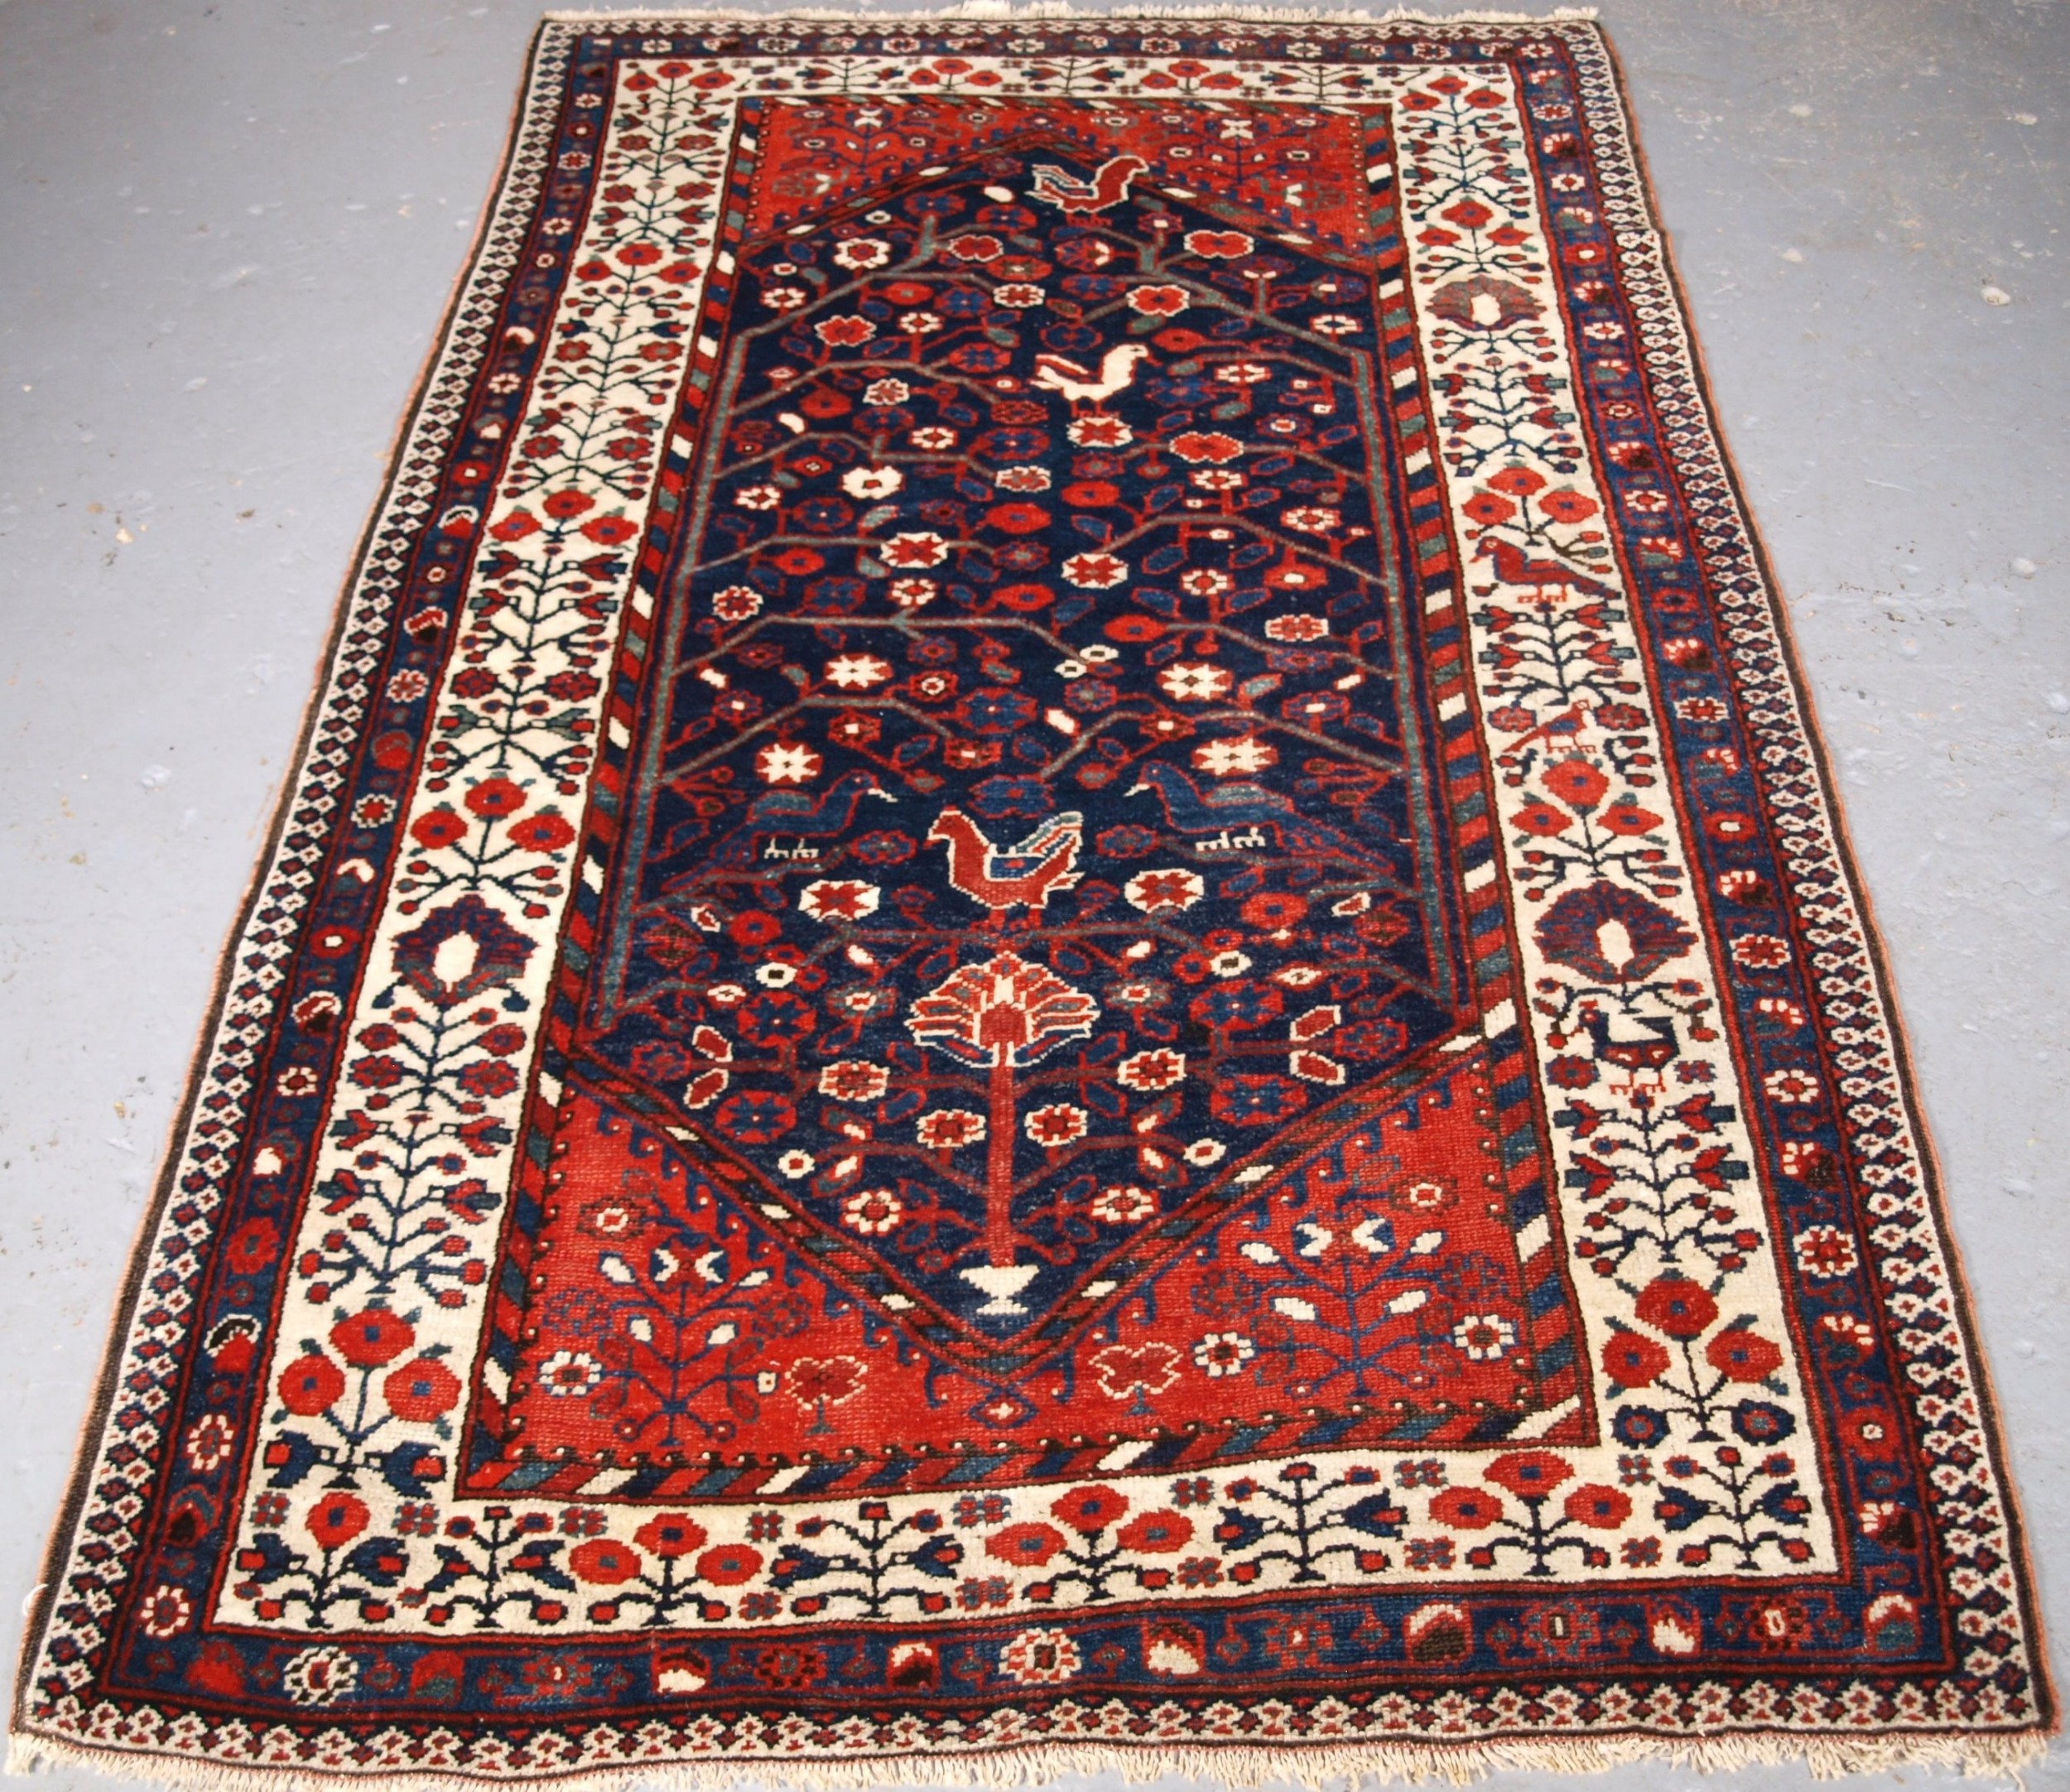 antique luri rug of outstanding design flowers and birds circa 1900